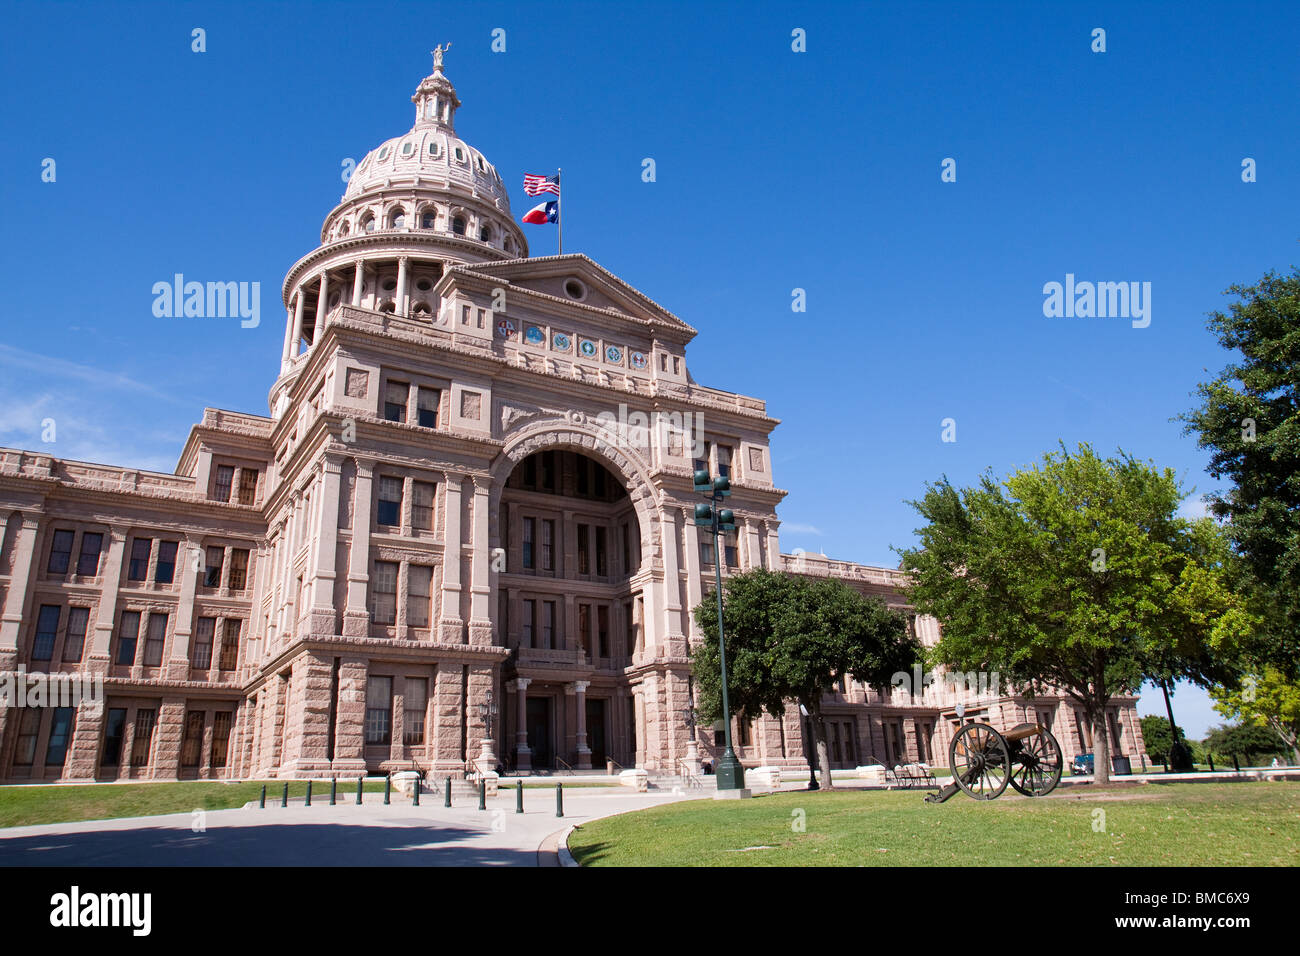 Front of Texas state capitol building or statehouse in Austin - Stock Image